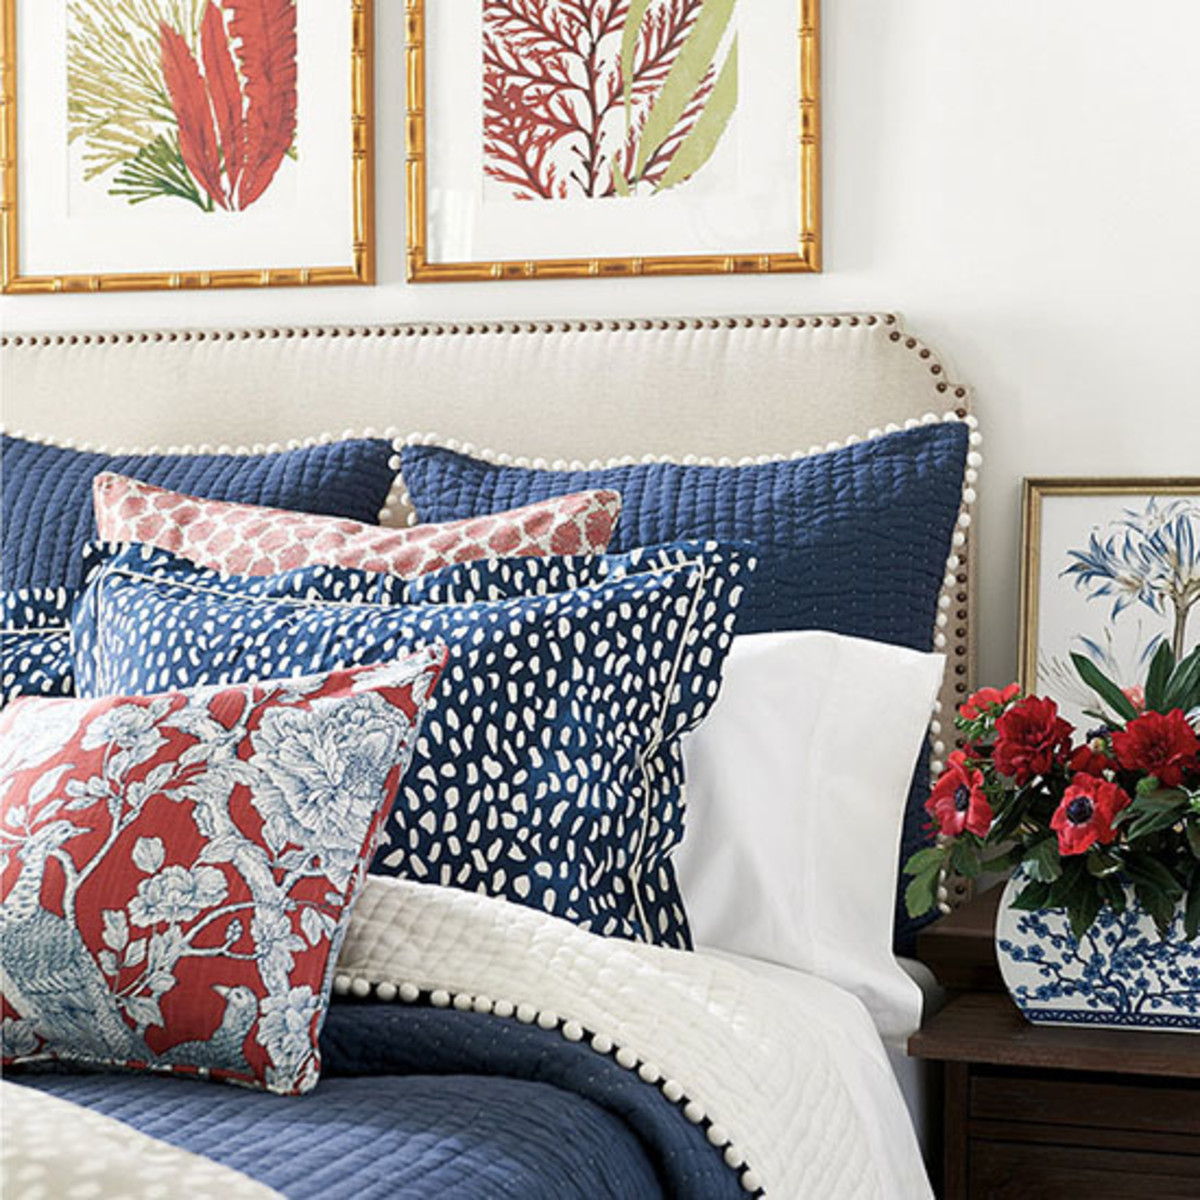 The bold bedroom in white, blue and red colors! The the furniture and linen tufted headboard and the sides.